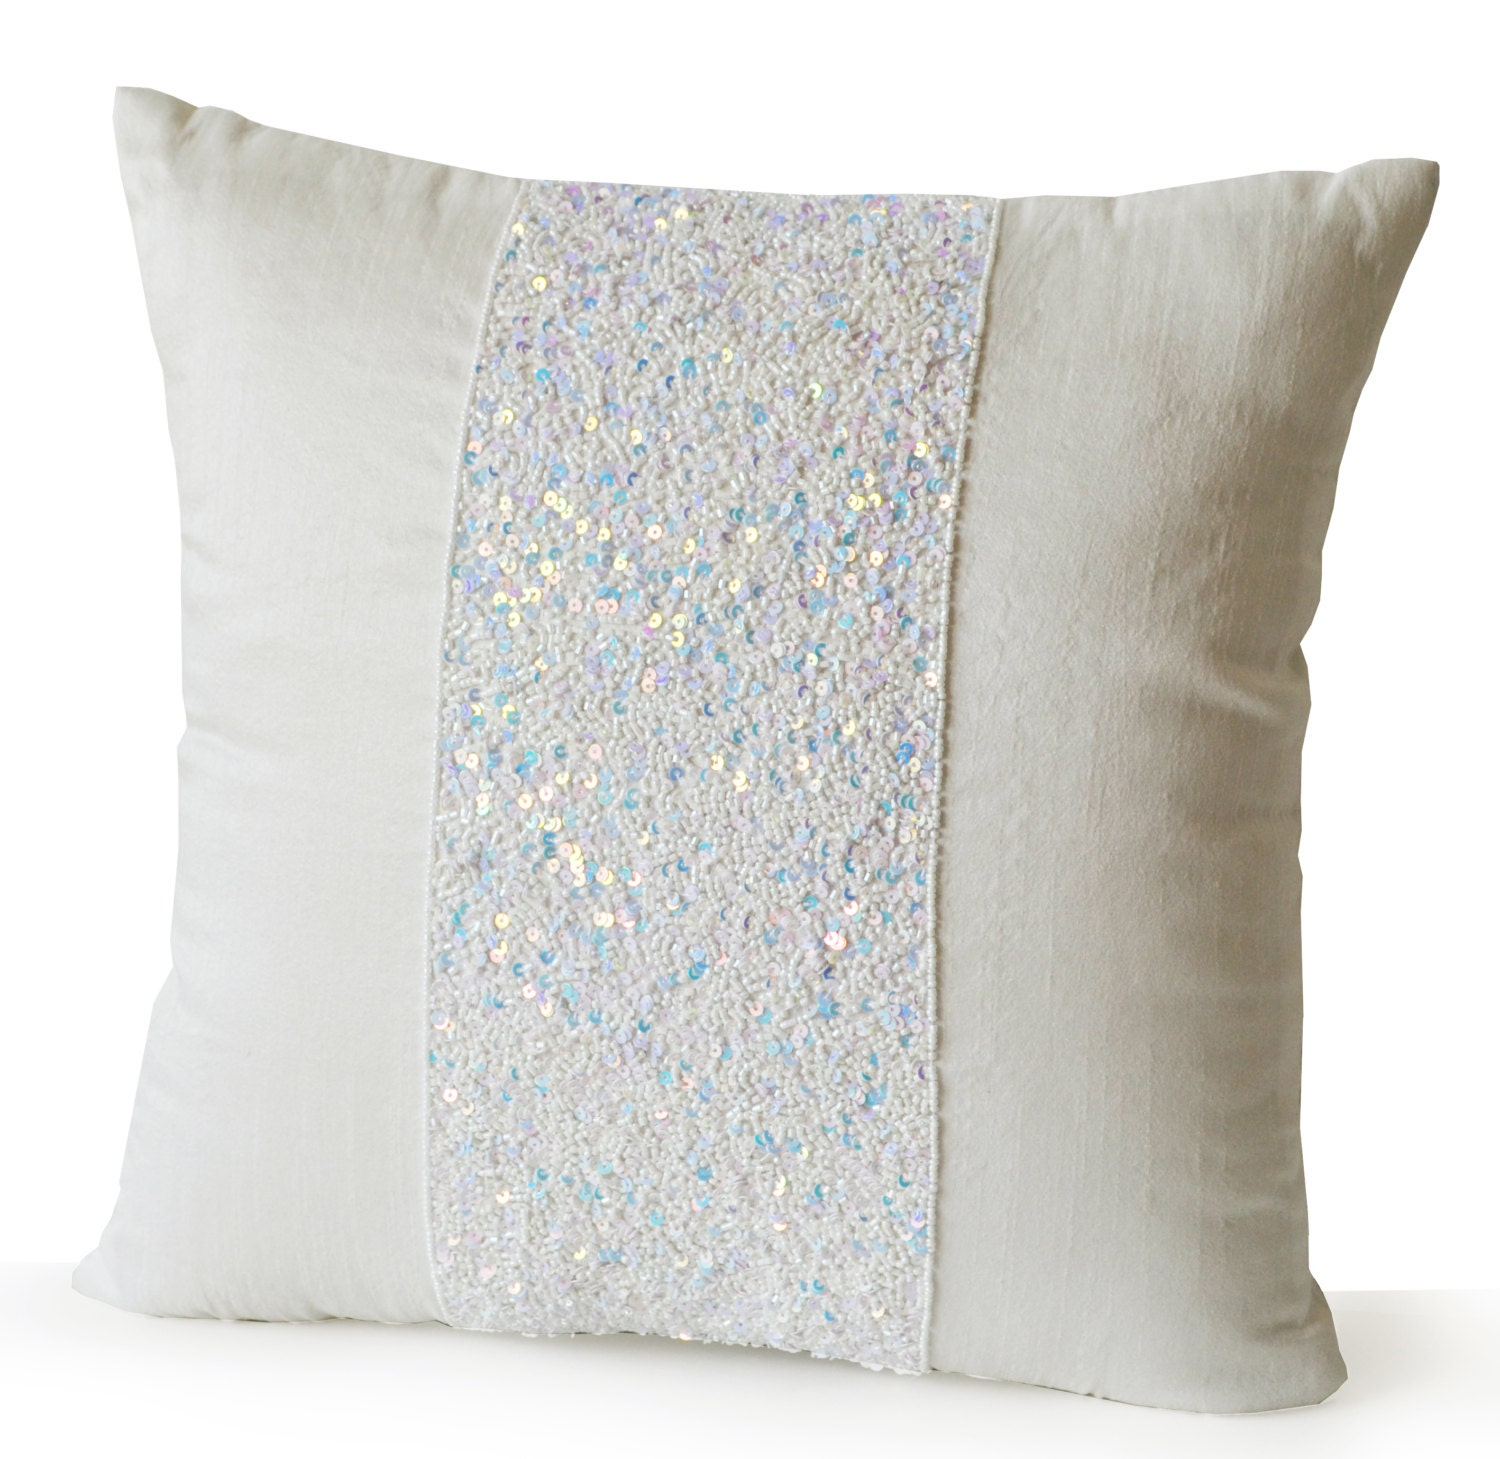 Black Sparkle Throw Pillow : Throw Pillows Ivory White Silk Sparkle Pillow Bead Sequin